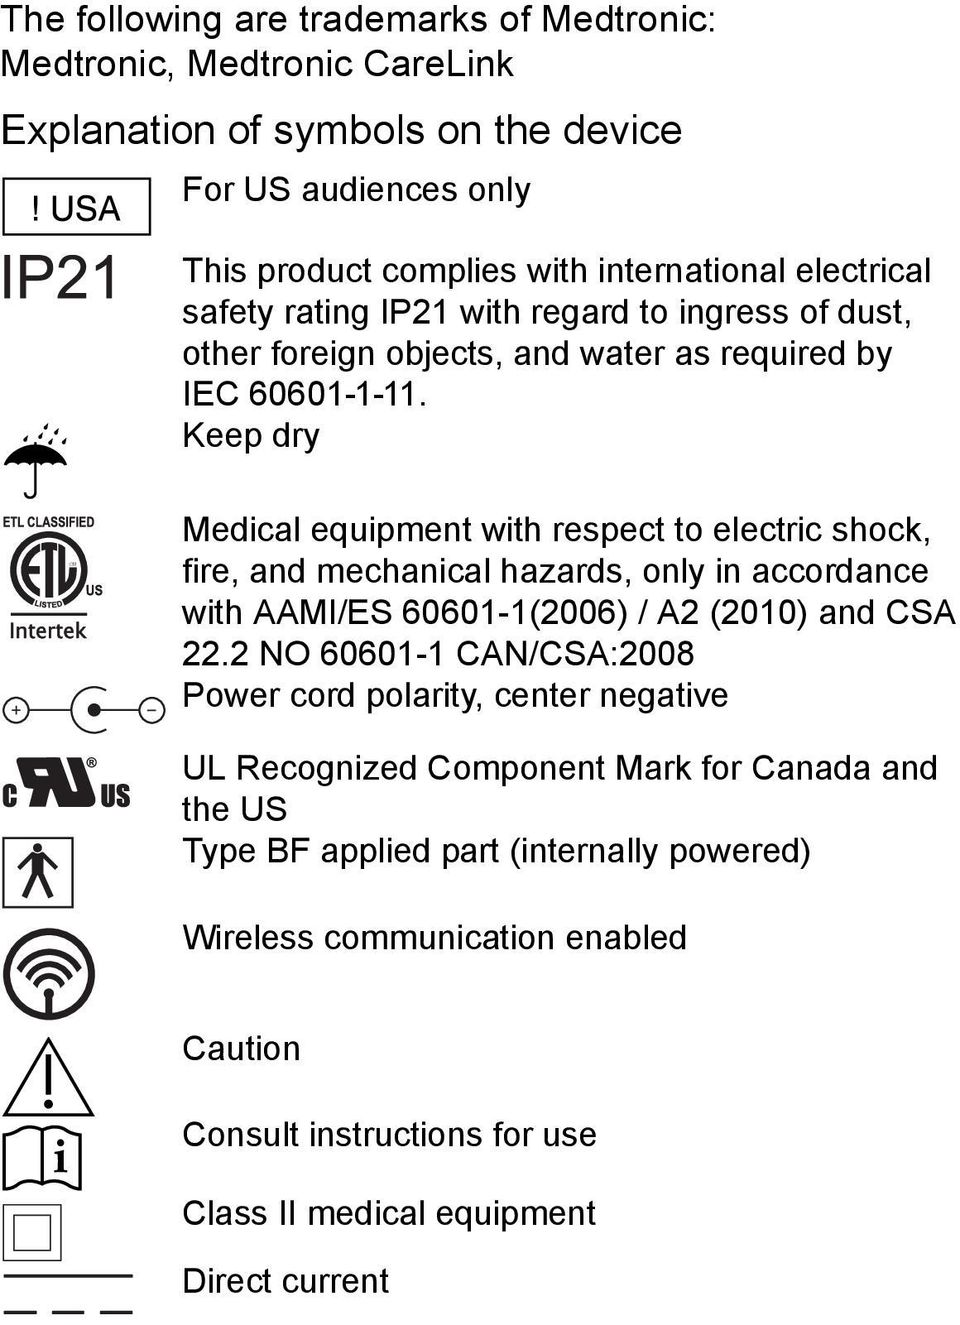 Keep dry Medical equipment with respect to electric shock, fire, and mechanical hazards, only in accordance with AAMI/ES 60601-1(2006) / A2 (2010) and CSA 22.